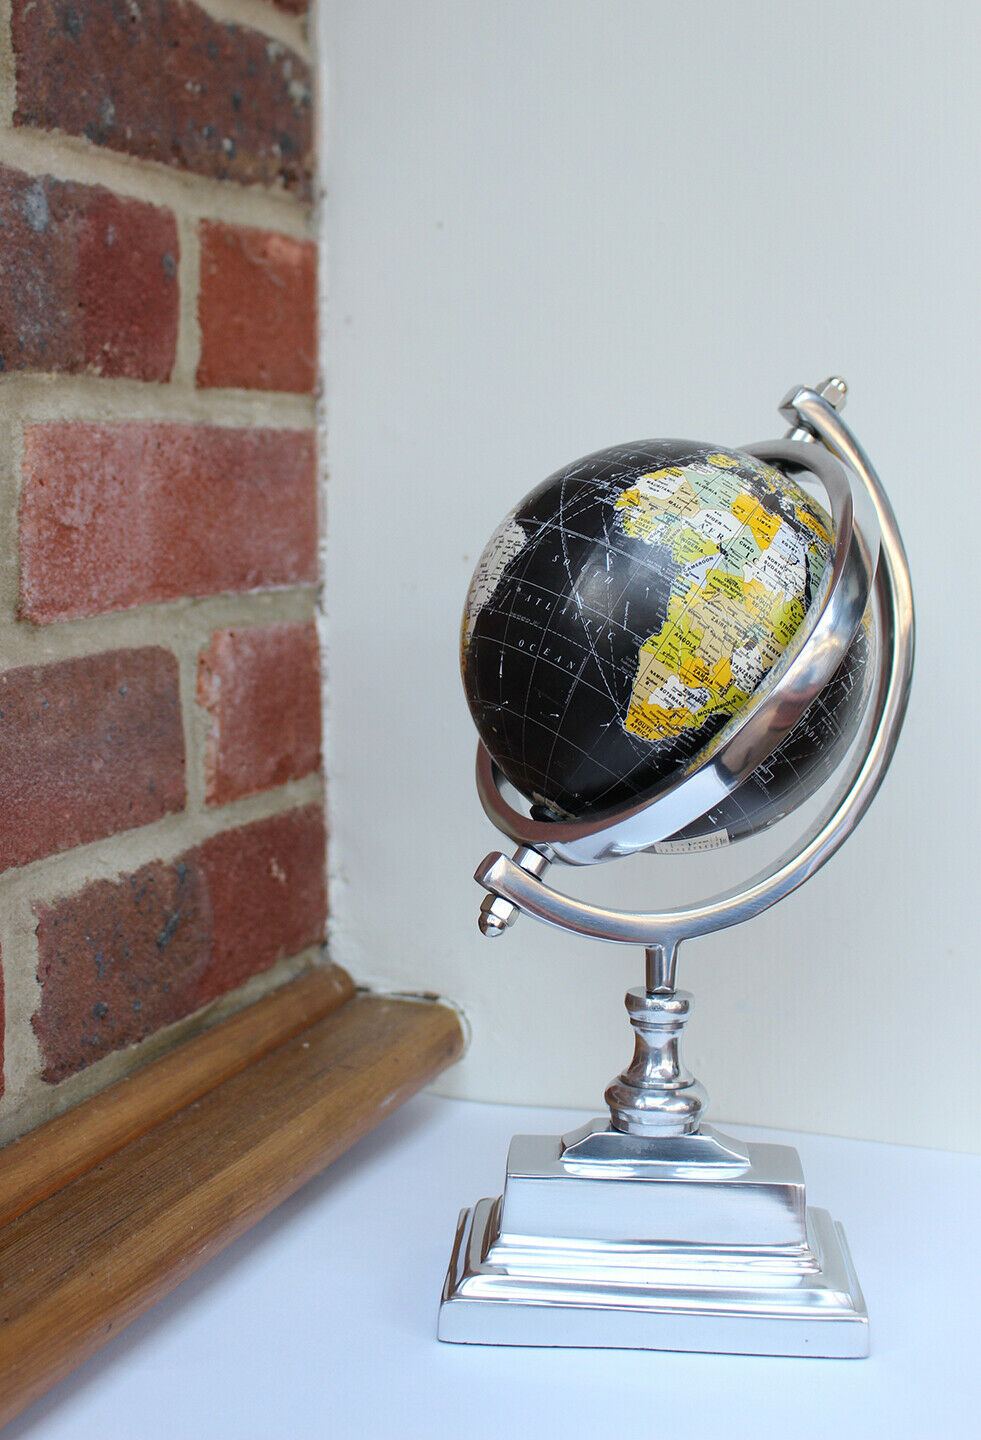 Free standing decorative 14cm diameter globe on metal stand